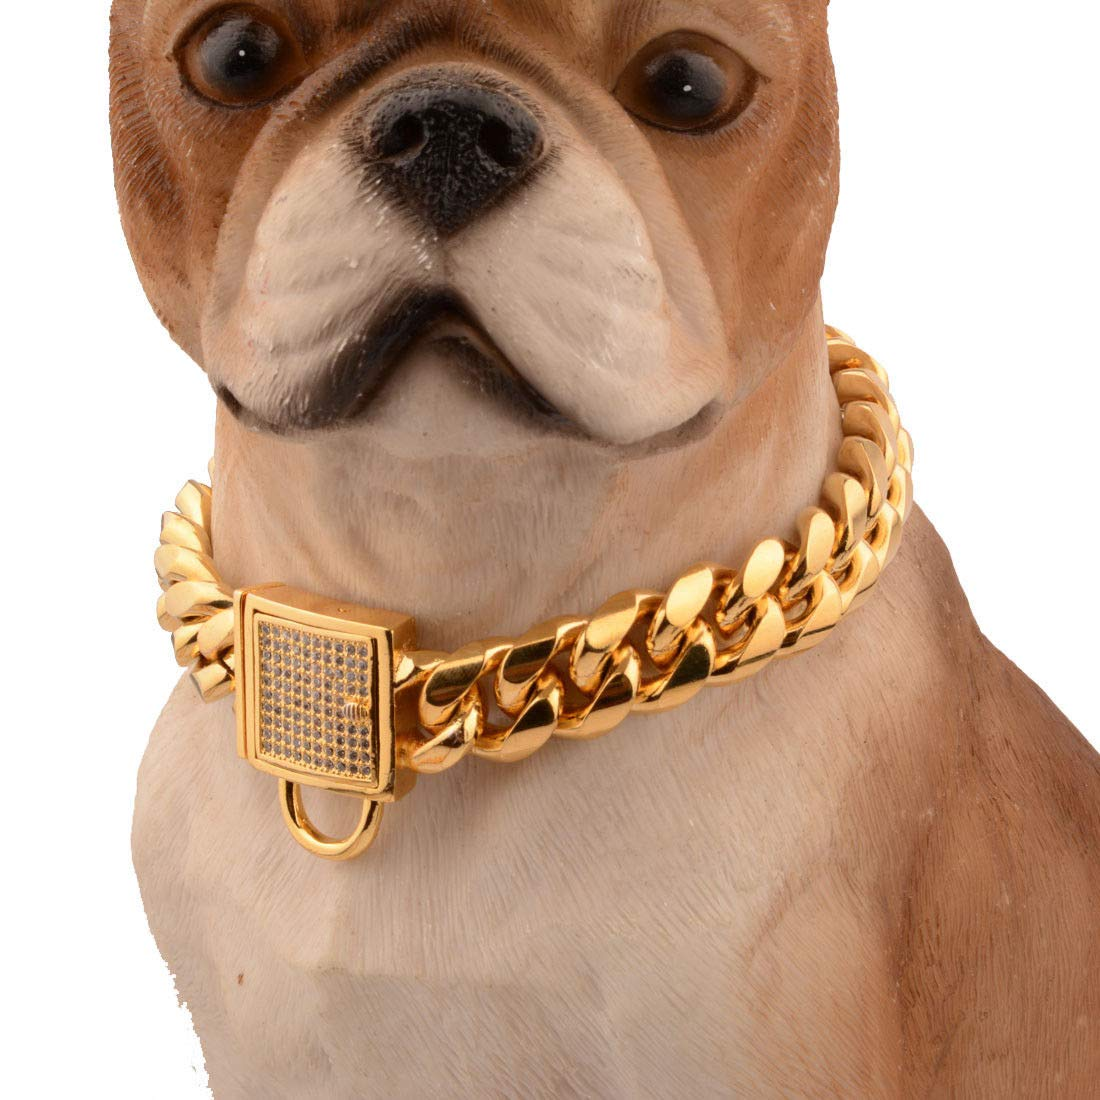 14inches FidgetFidget 14mm gold Stainless Steel Curb Chain Pet Dog Choker Collar redtweiler Pit Bull 14inches